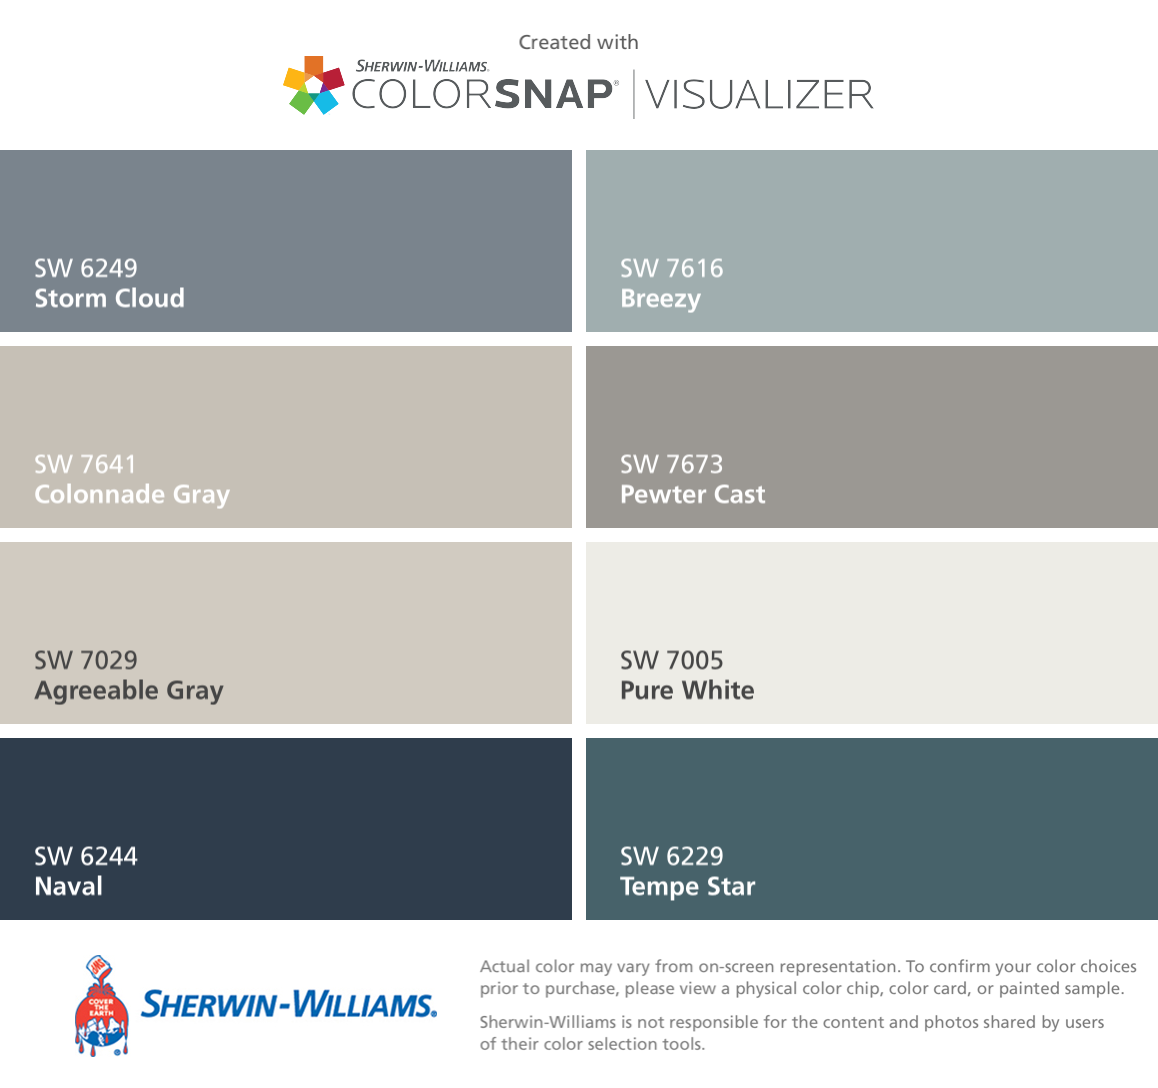 I found these colors with ColorSnap® Visualizer for iPhone by Sherwin-Williams: Storm Cloud (SW 6249), Colonnade Gray (SW 7641), Agreeable Gray (SW 7029), Naval (SW 6244), Breezy (SW 7616), Pewter Cast (SW 7673), Pure White (SW 7005), Tempe Star (SW 6229). #sherwinwilliamsagreeablegray